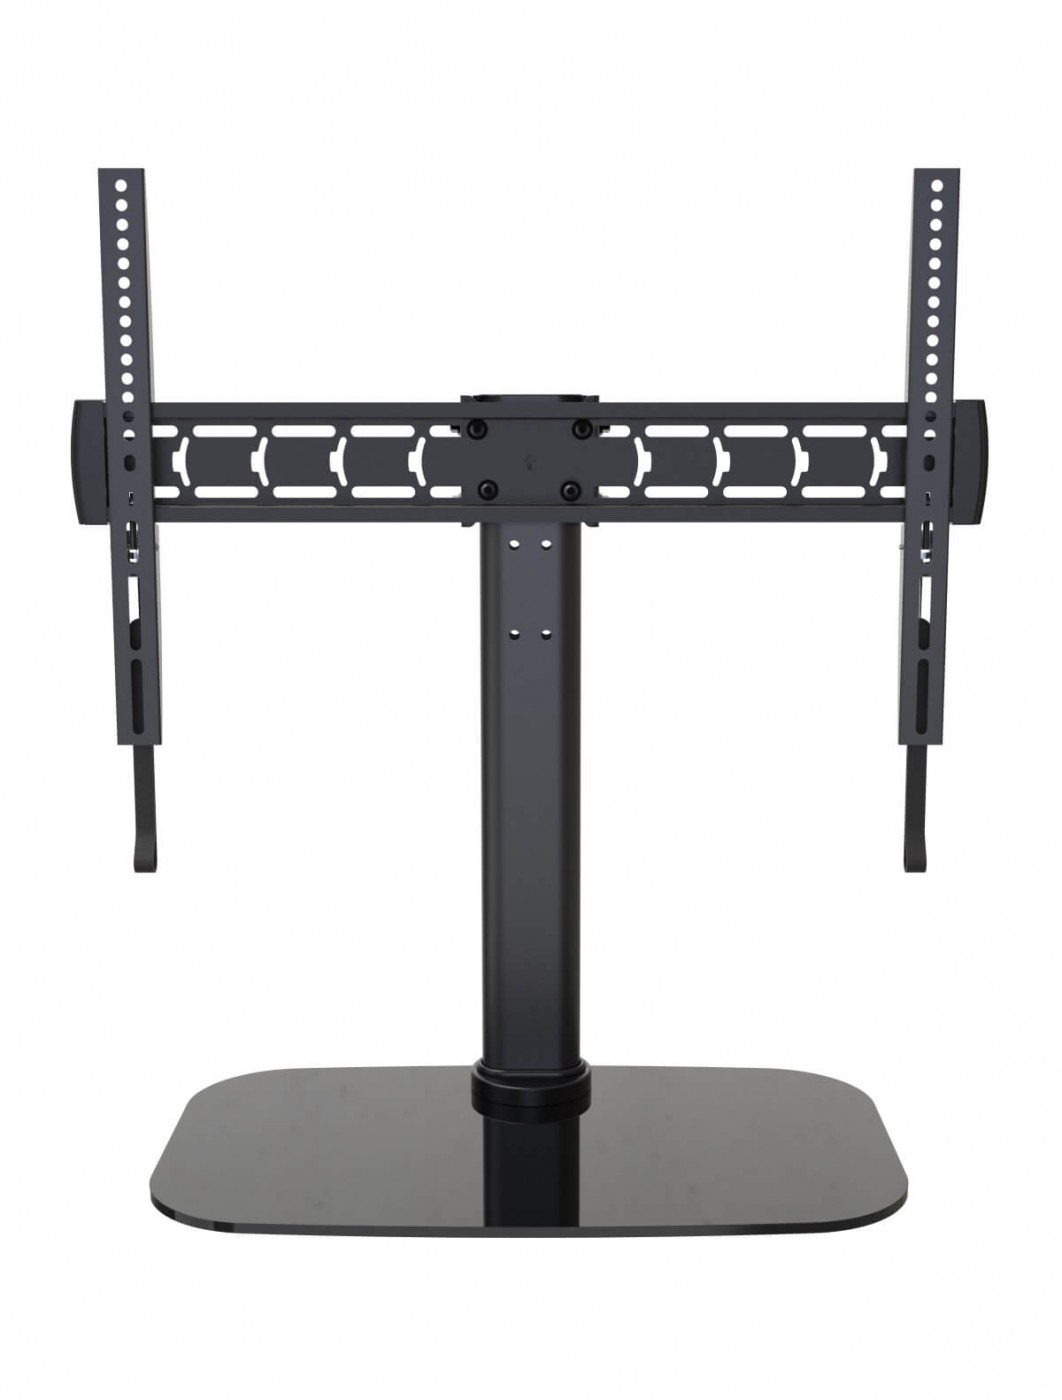 TV Stands - Alphason Table Top TV Stand ADTTS0311